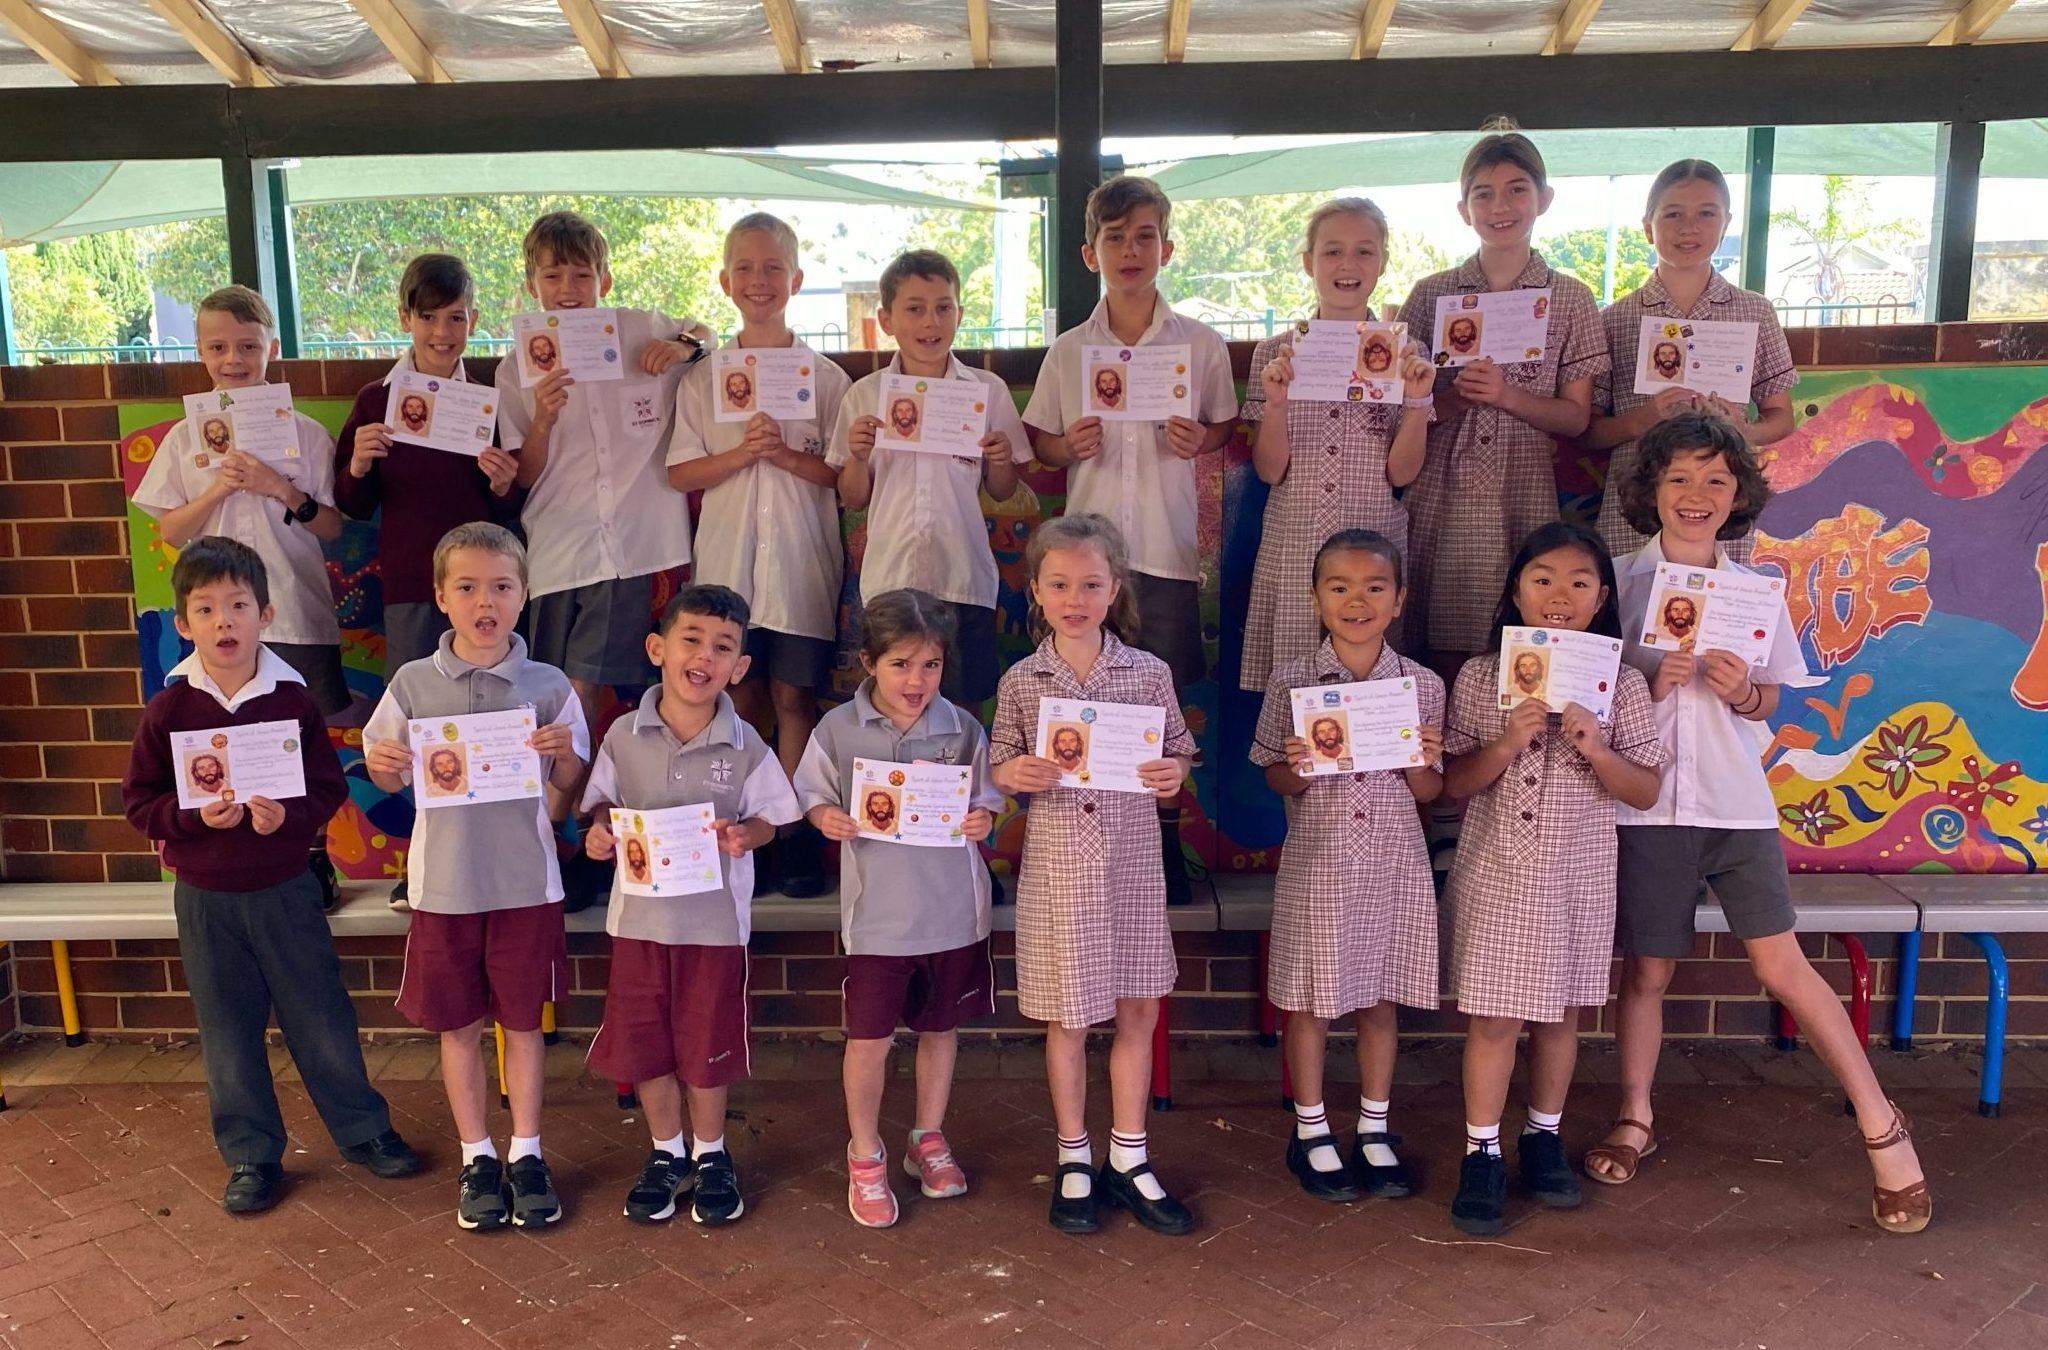 MJR Spirit of Jesus Award Winners – Term 4 Week 8